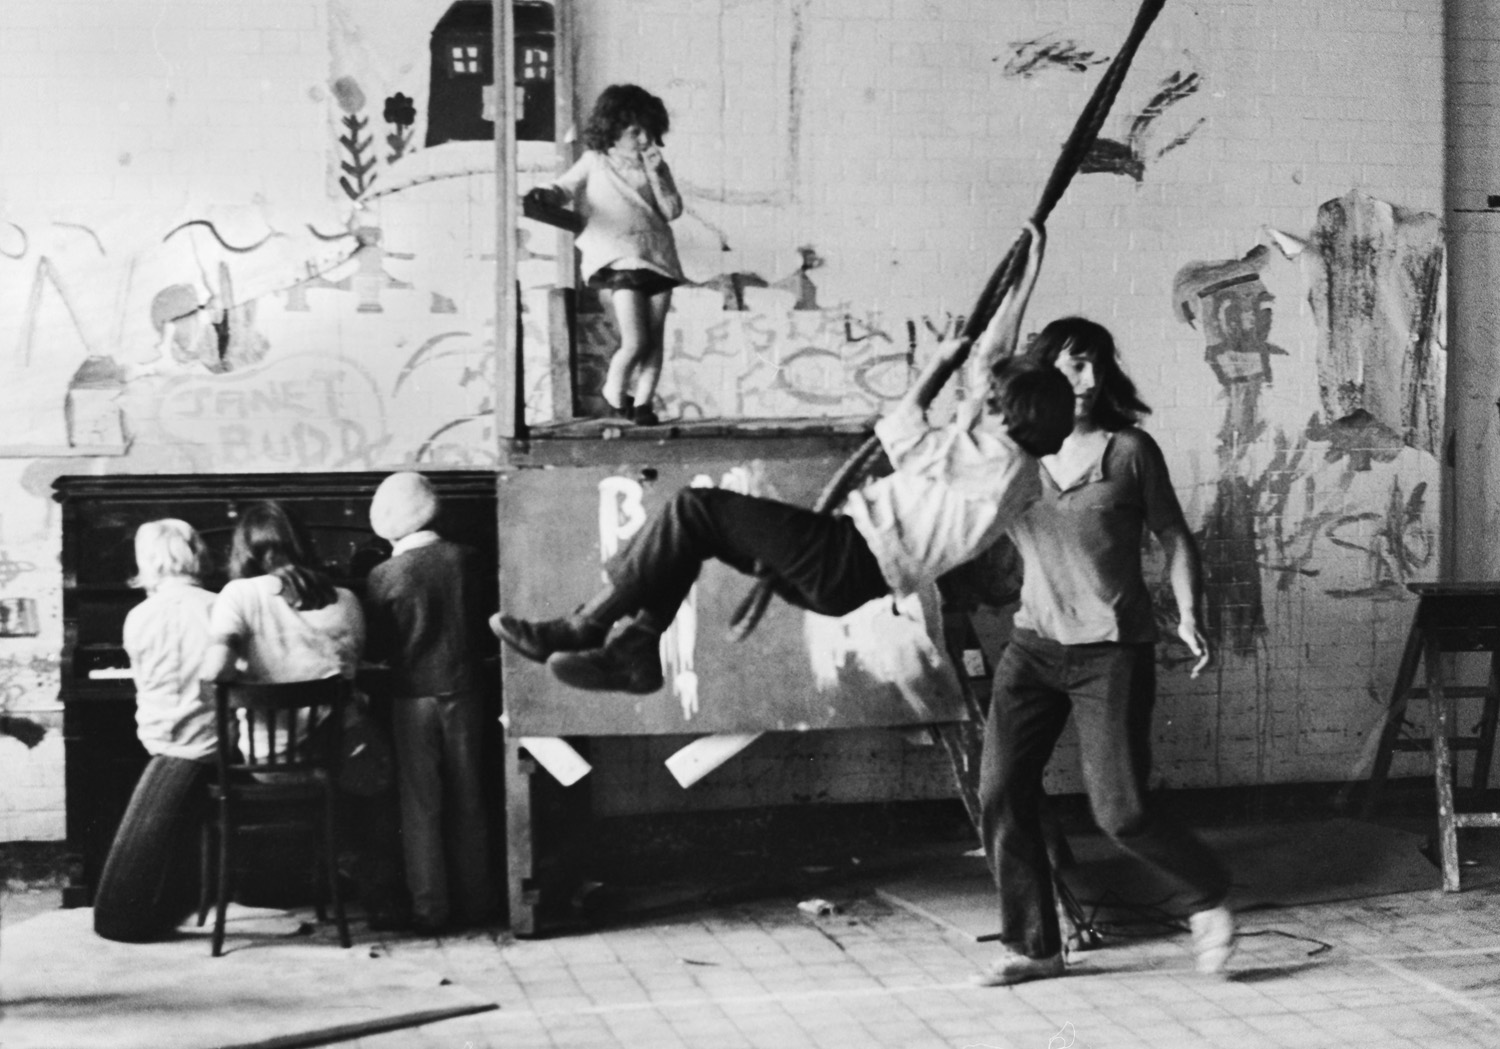 Kids Summer School In Disused Fire Station 1971